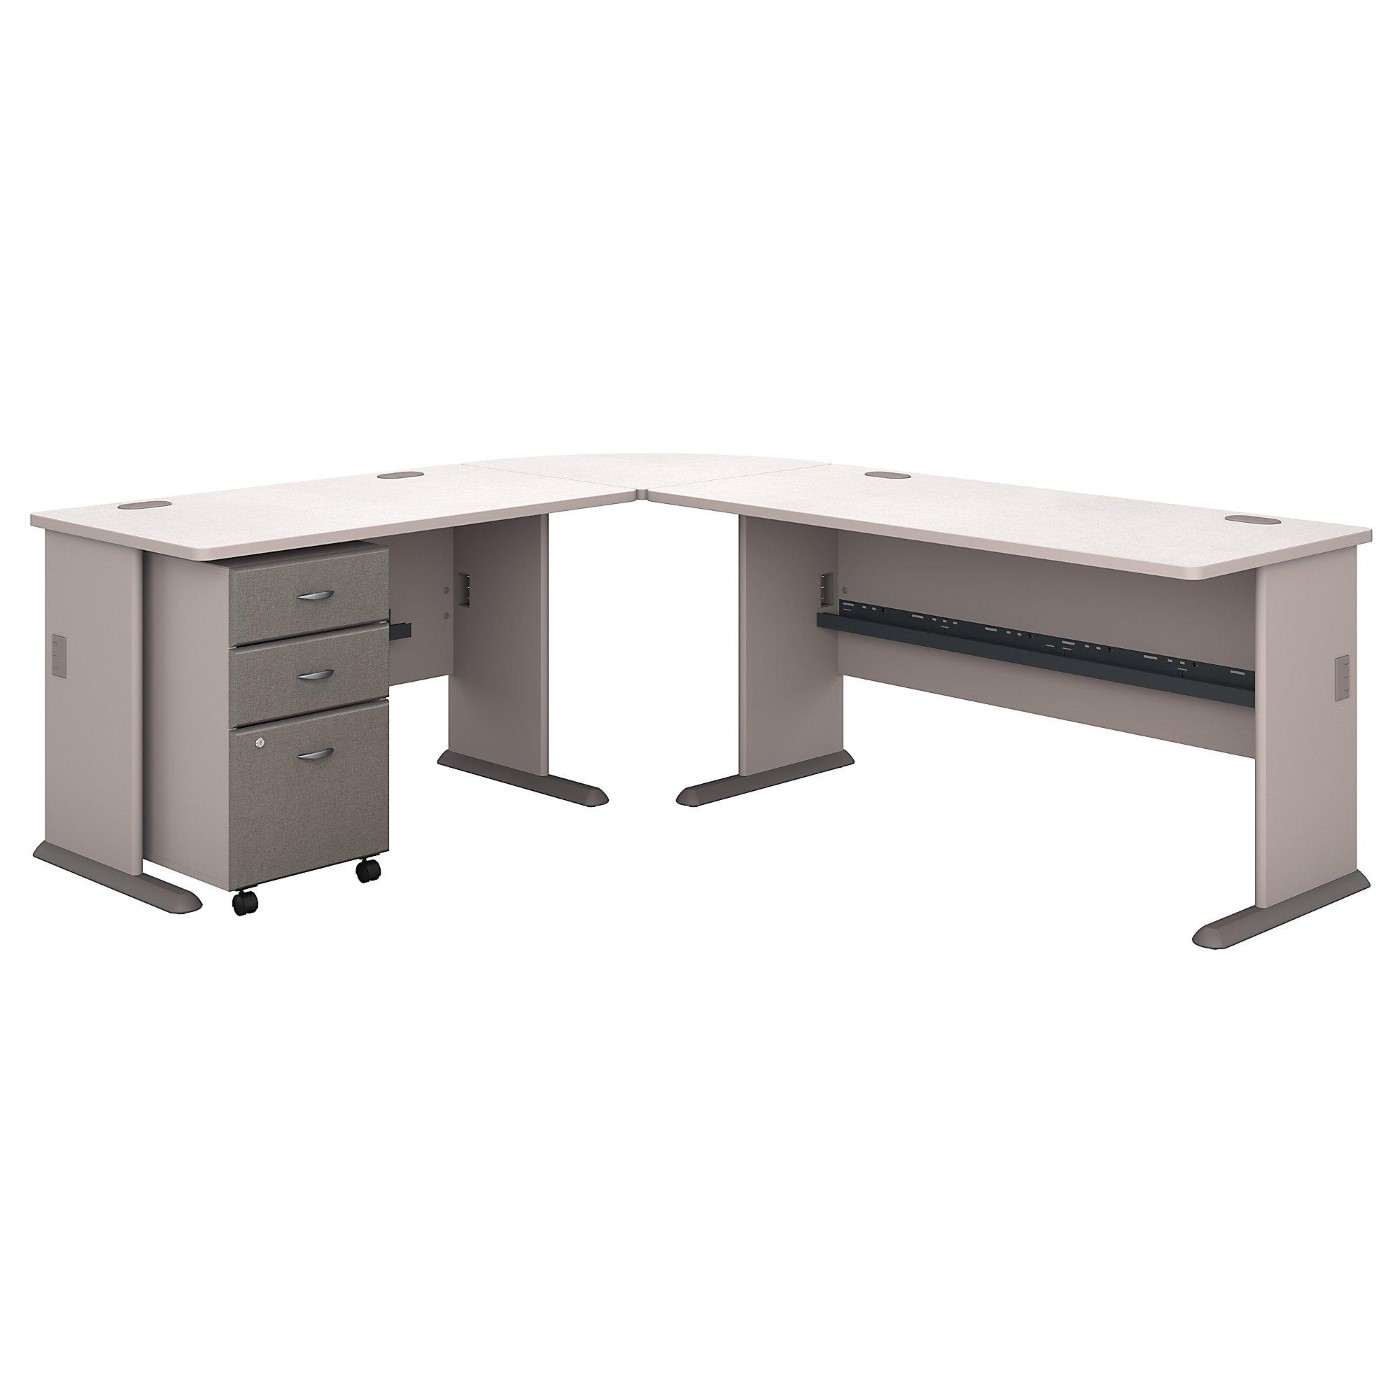 <font color=#c60><b>BUSH BUSINESS FURNITURE SERIES A 87W X 75D L SHAPED DESK WITH MOBILE FILE CABINET. FREE SHIPPING</font></b>